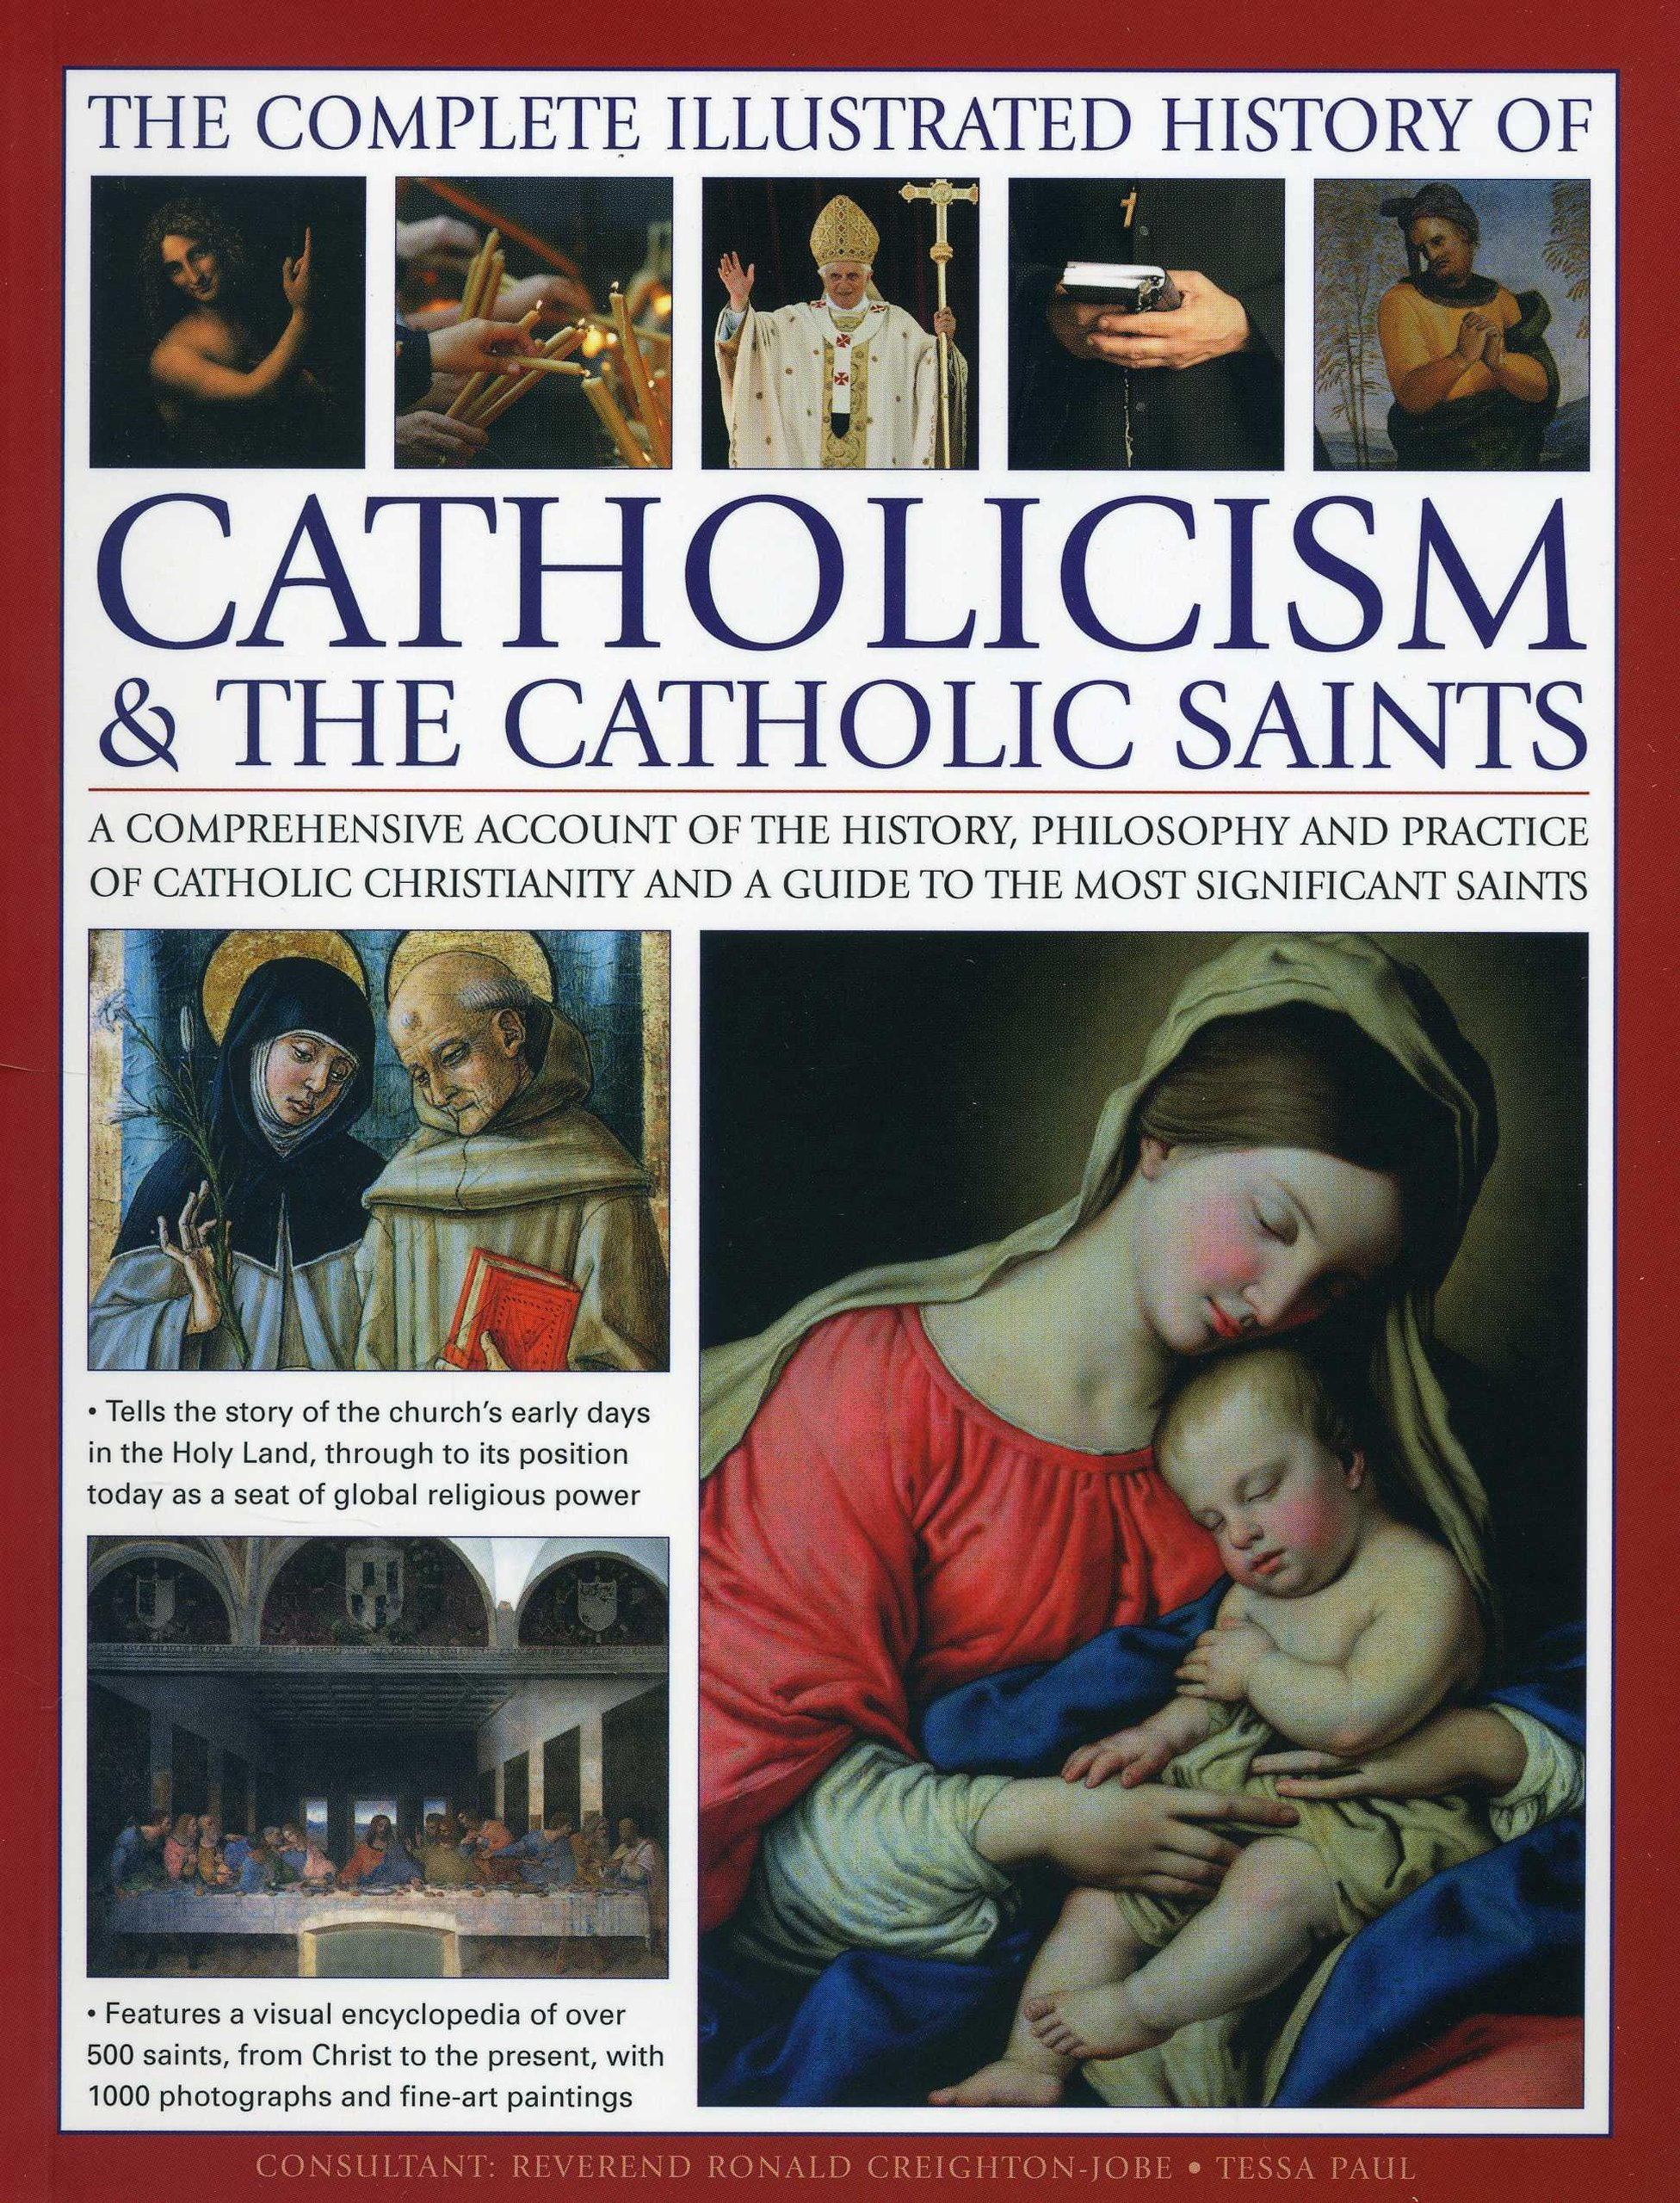 the-complete-illustrated-history-of-catholicism-the-catholic-saints-a-comprehensive-account-of-the-history-philosophy-and-practice-of-catholic-and-a-guide-to-the-most-significant-saints